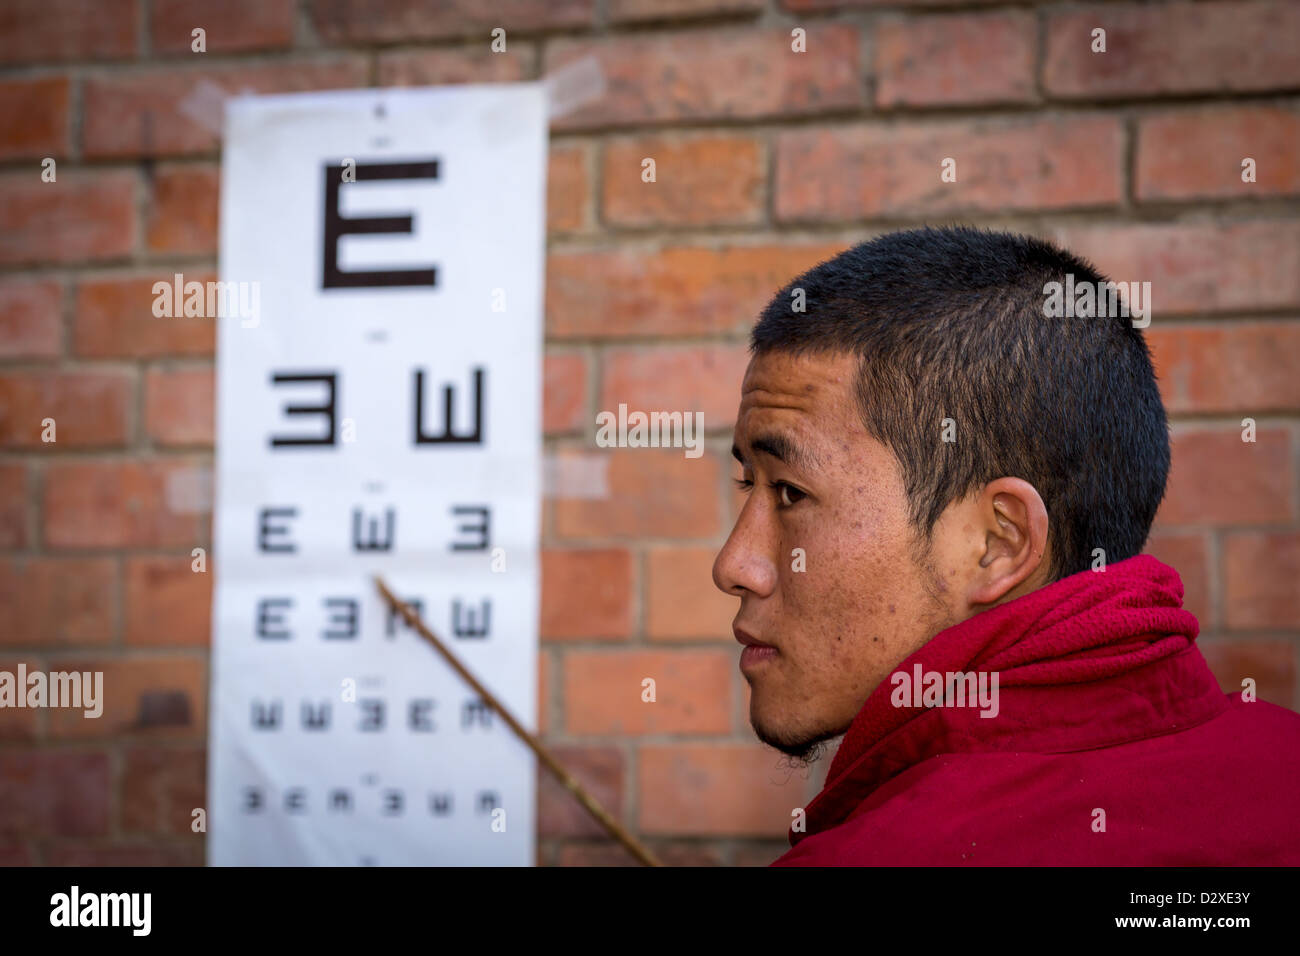 A monk from Amitabha monastery caring out a charity vision test for poor villagers. Amitabha Monastery, Nepal, Asia - Stock Image